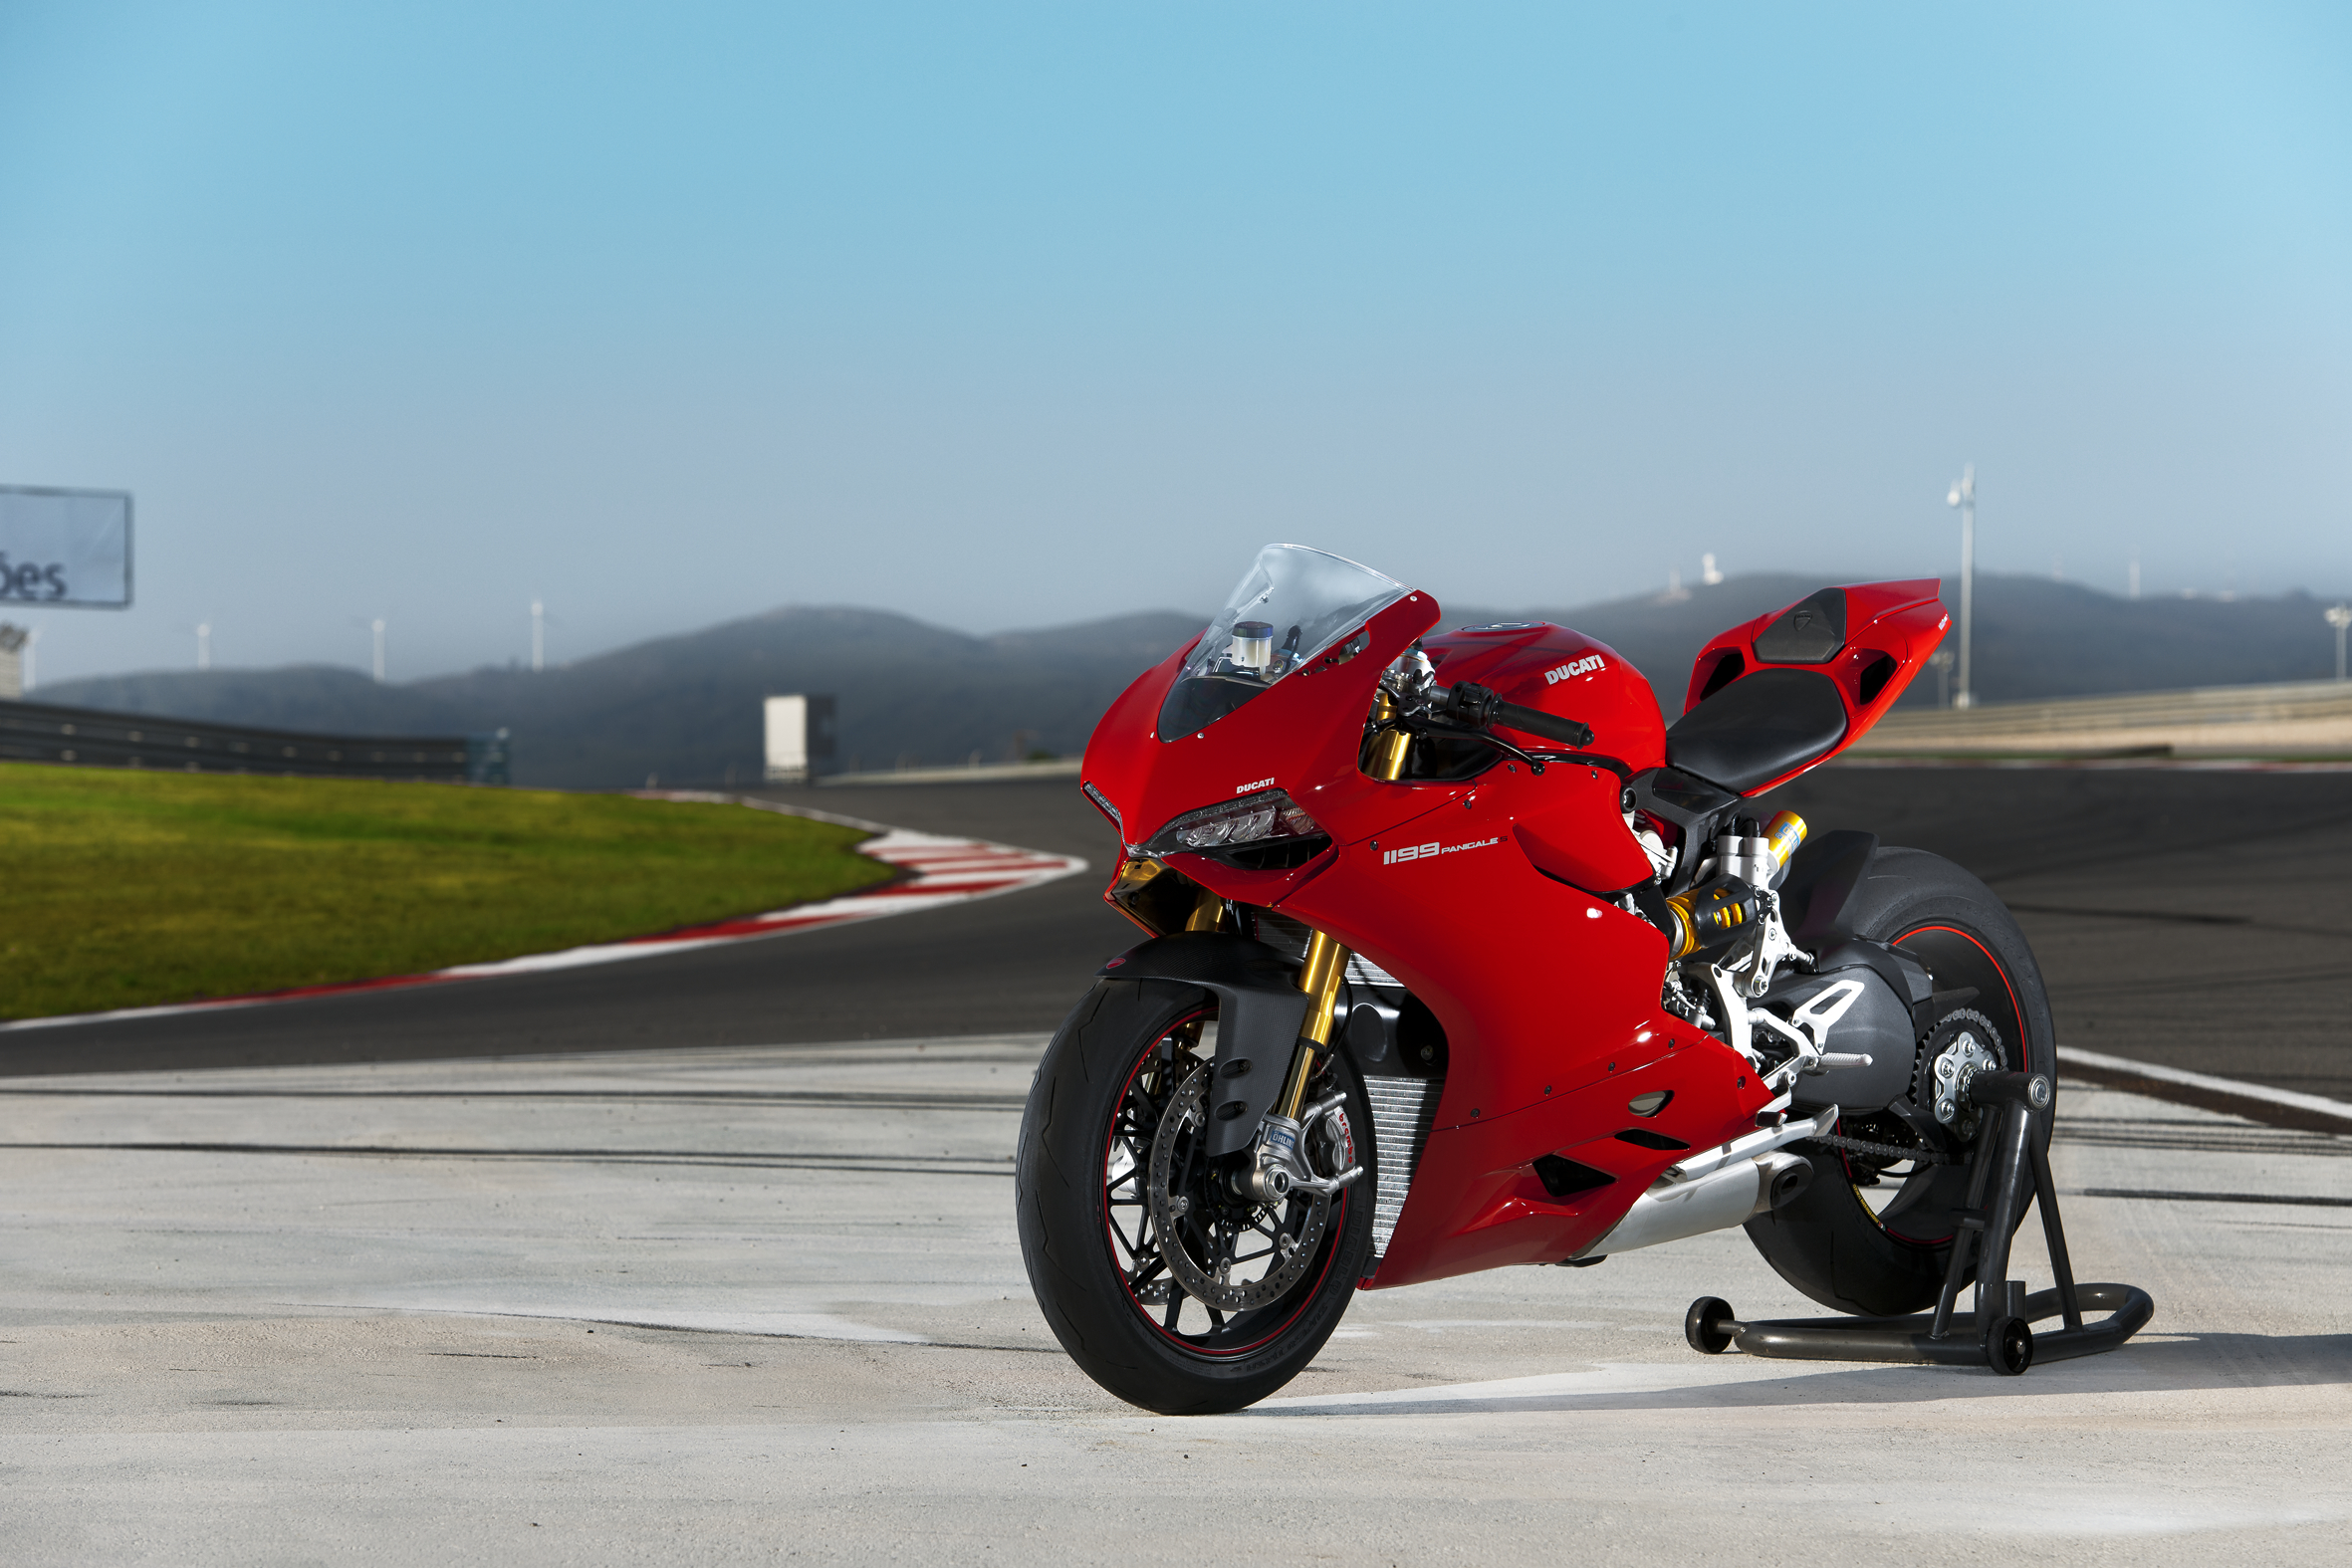 Ducati's flagship 1199 Panigale: the full story